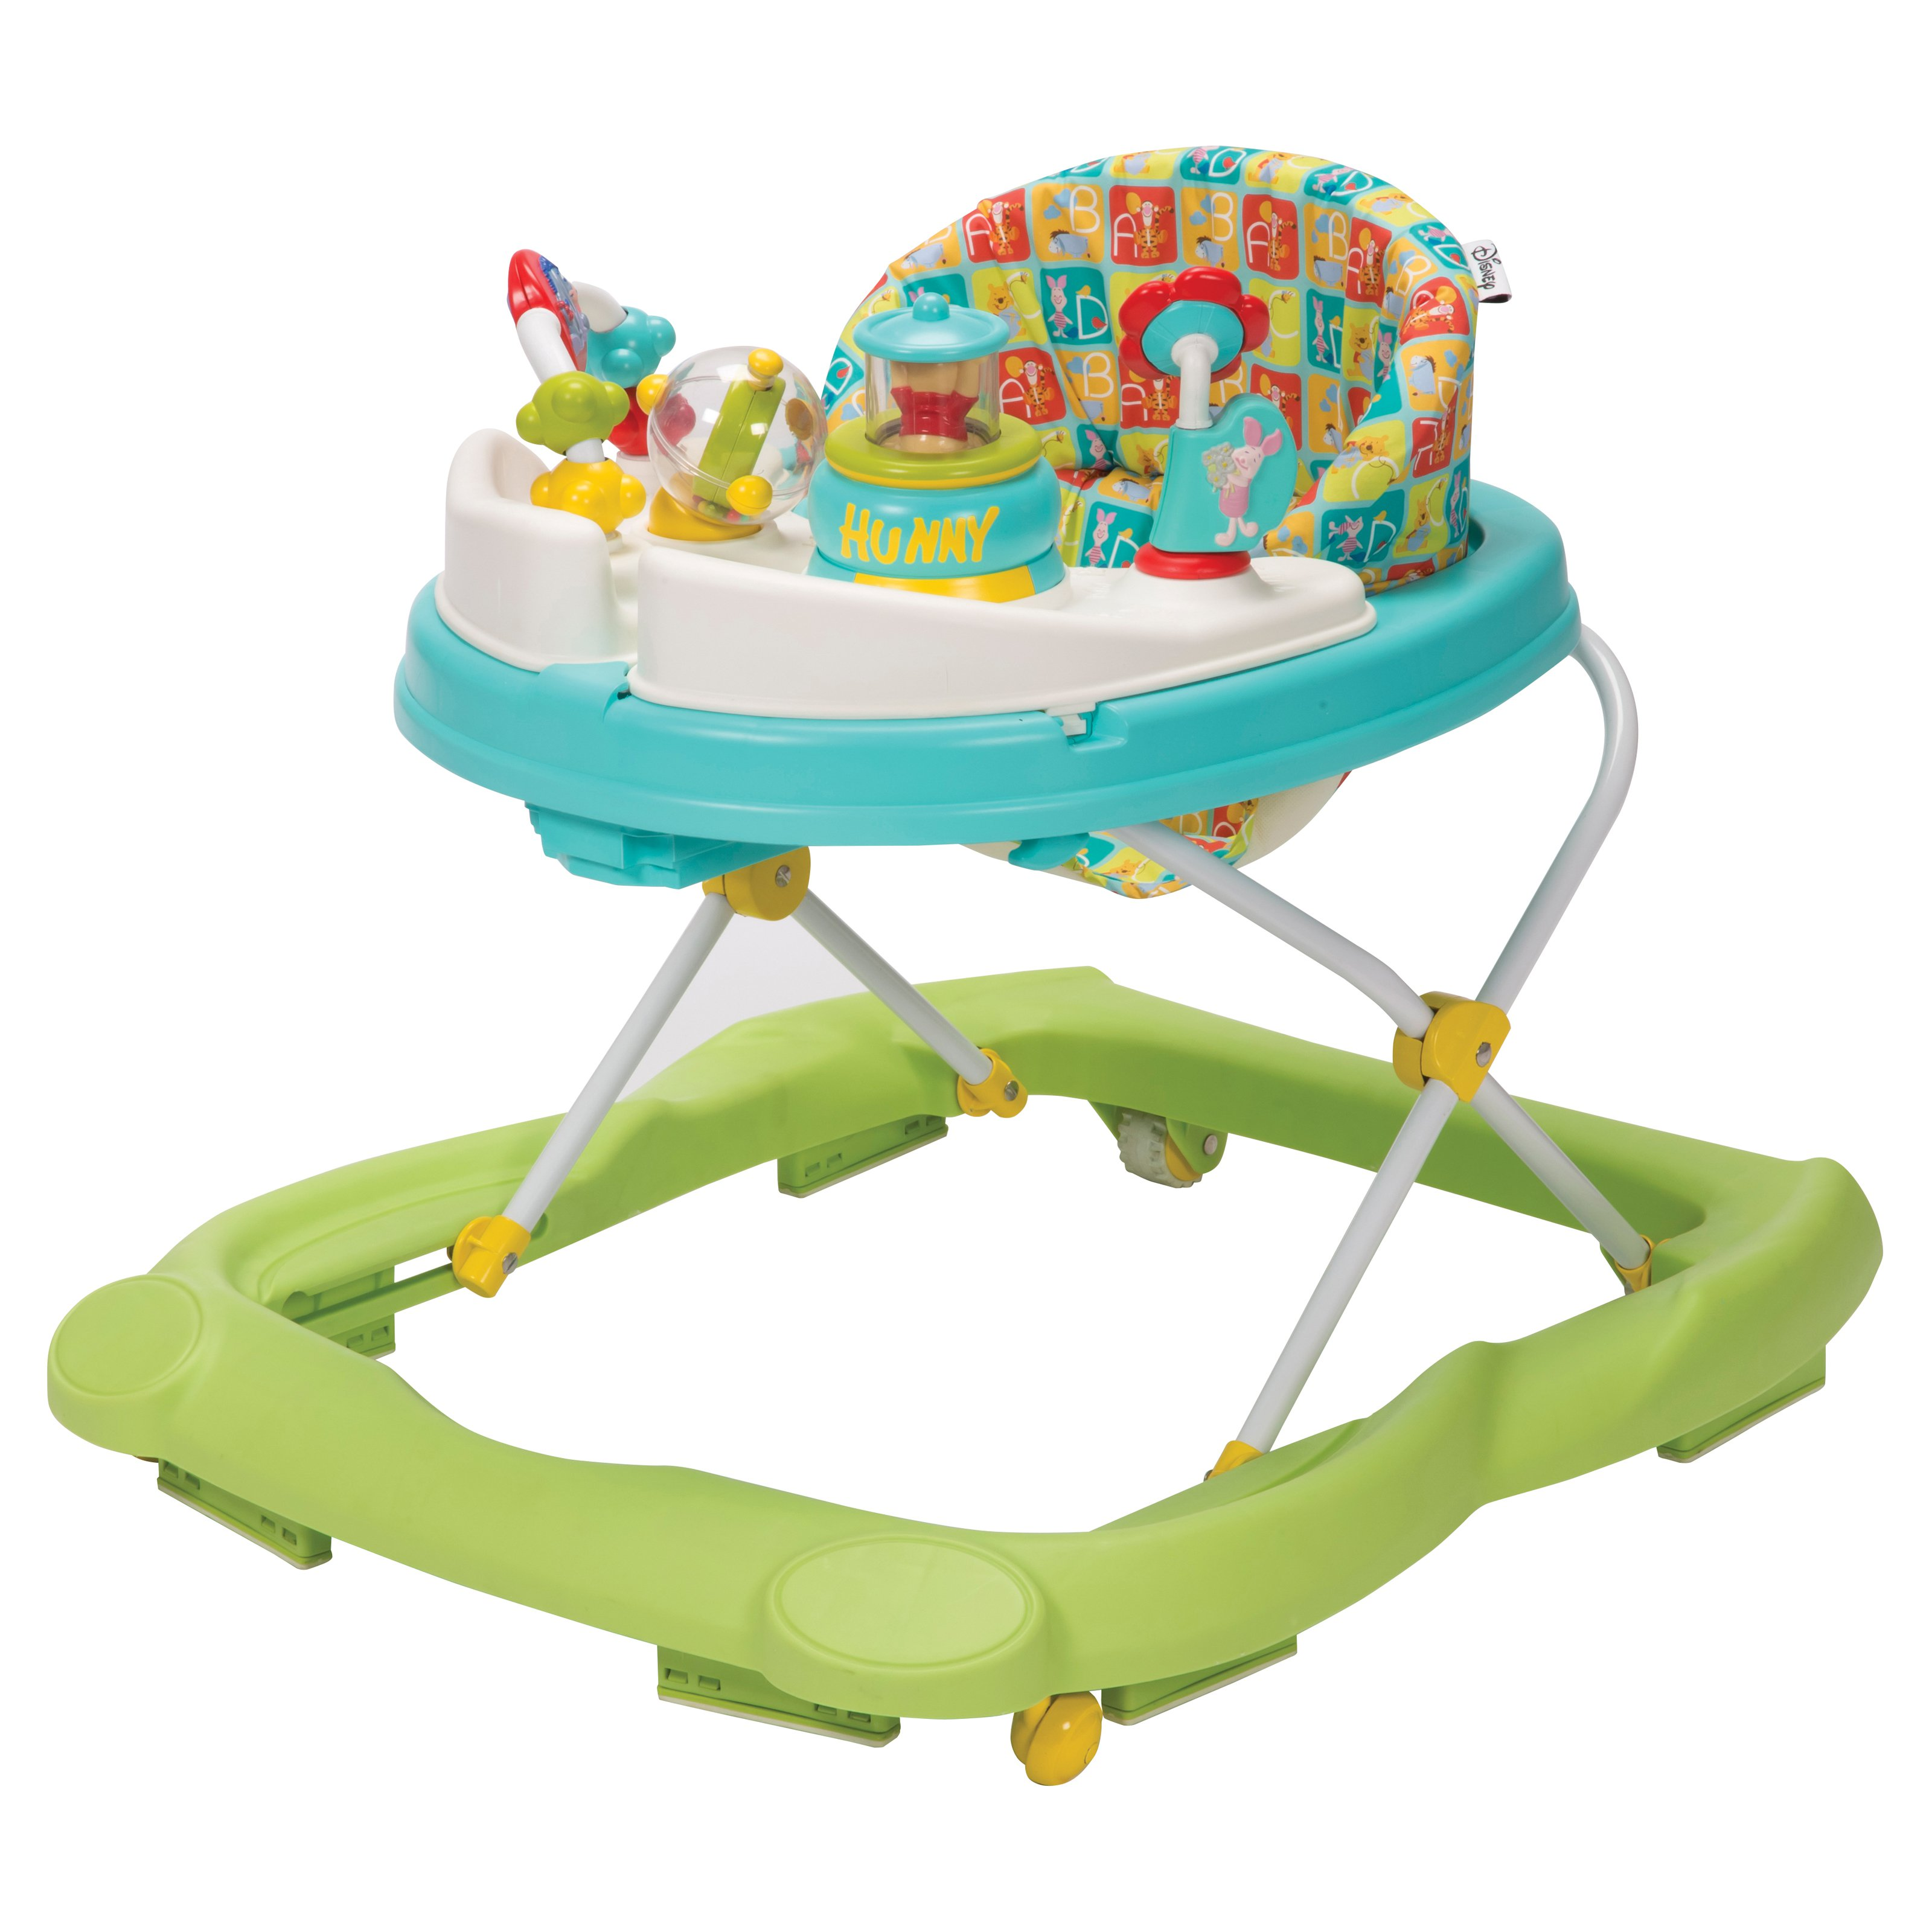 Disney Baby Music & Lights Walker Bees Knees by Disney Baby